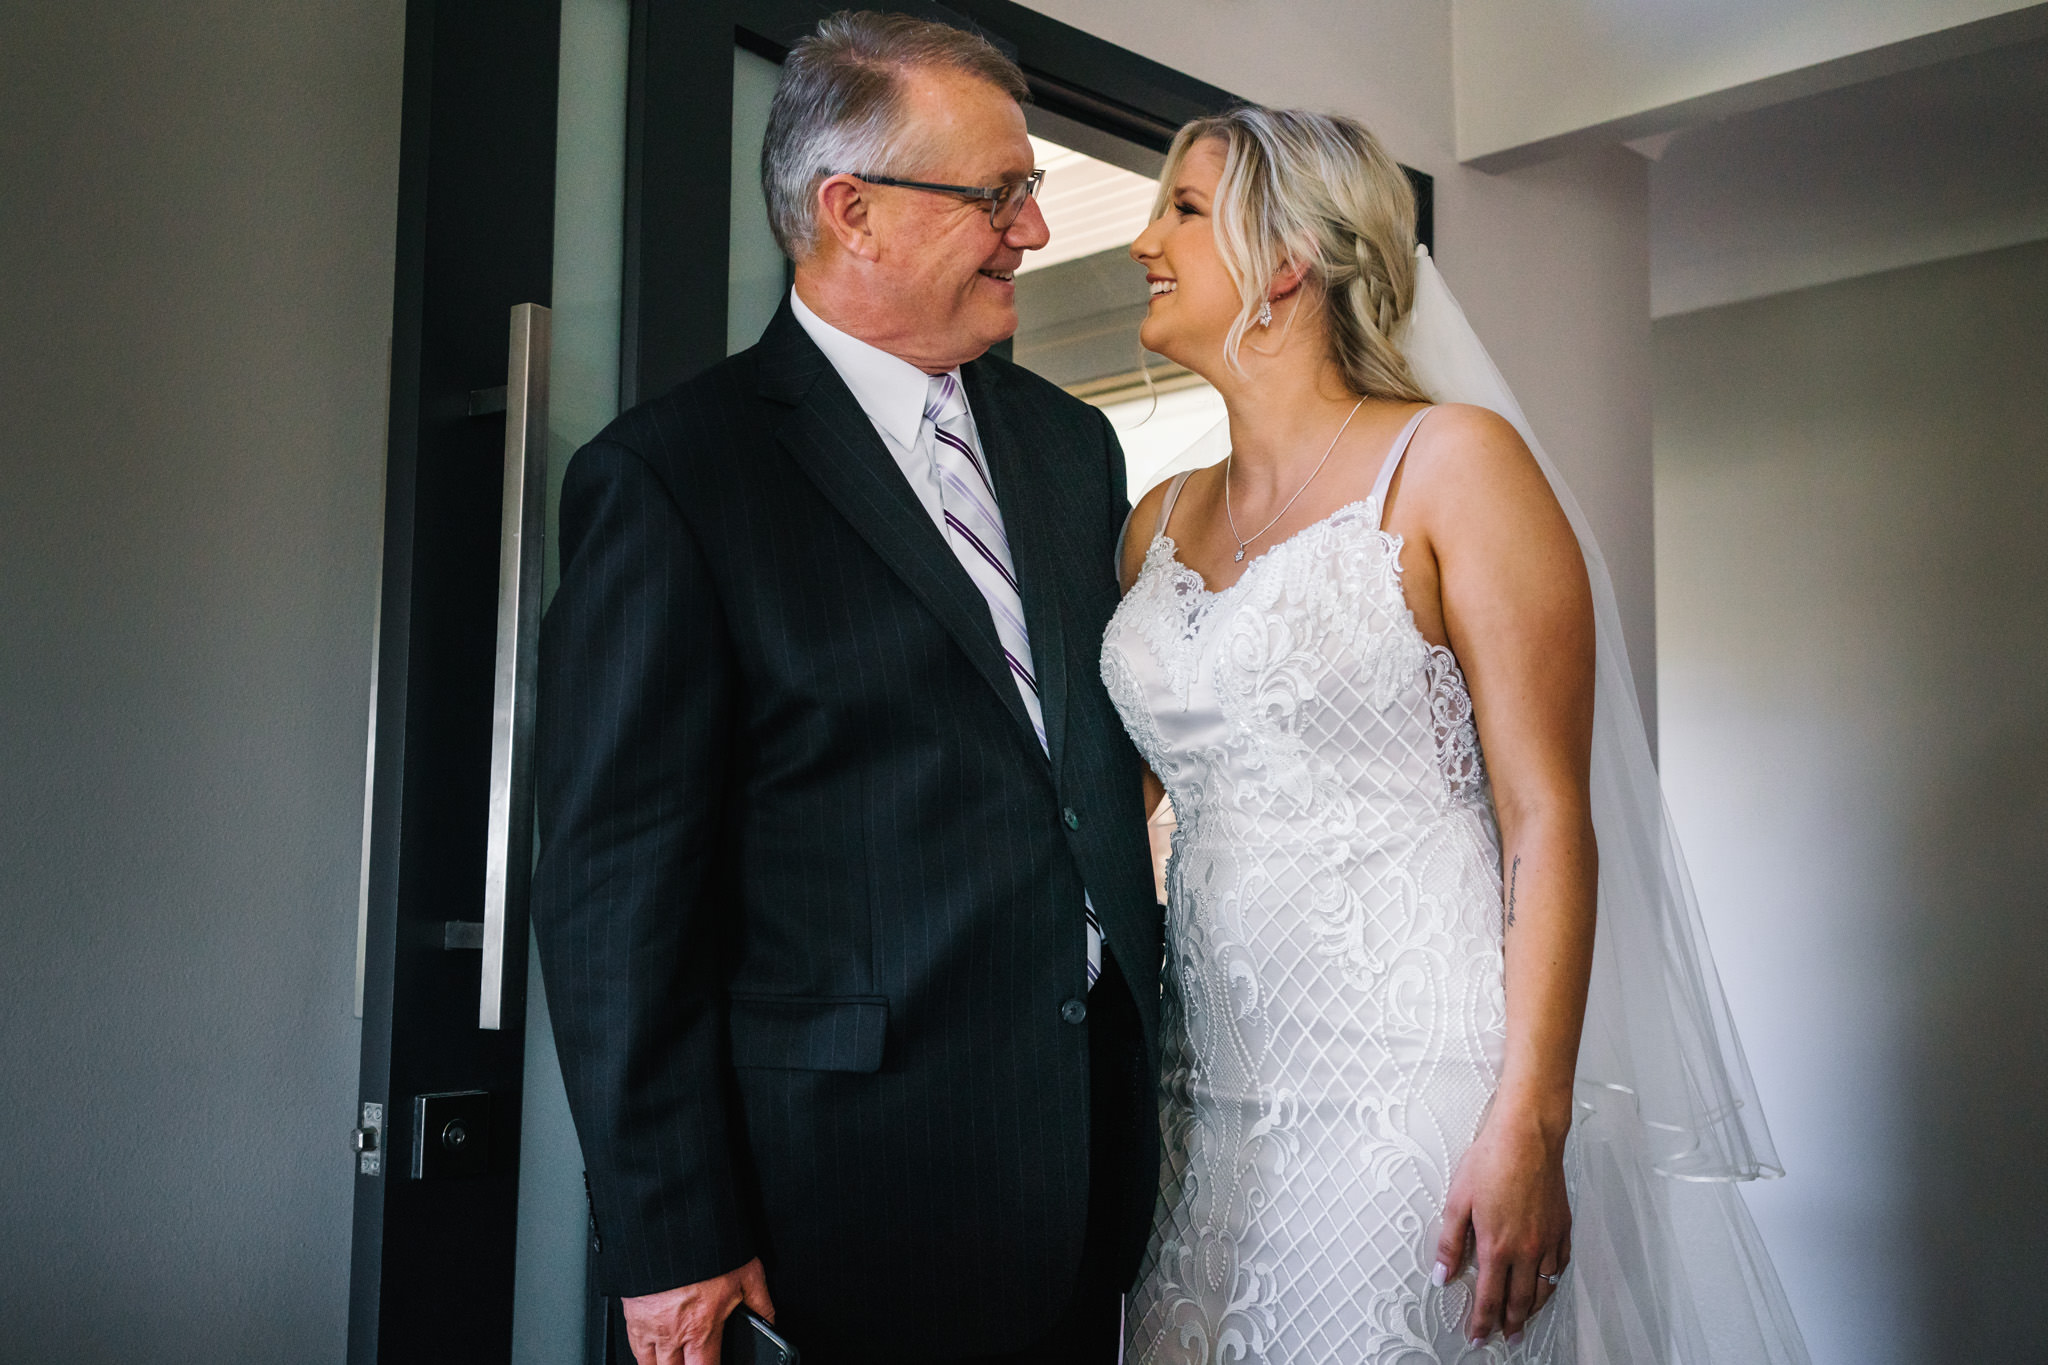 Bride and father hugging and smiling in family home